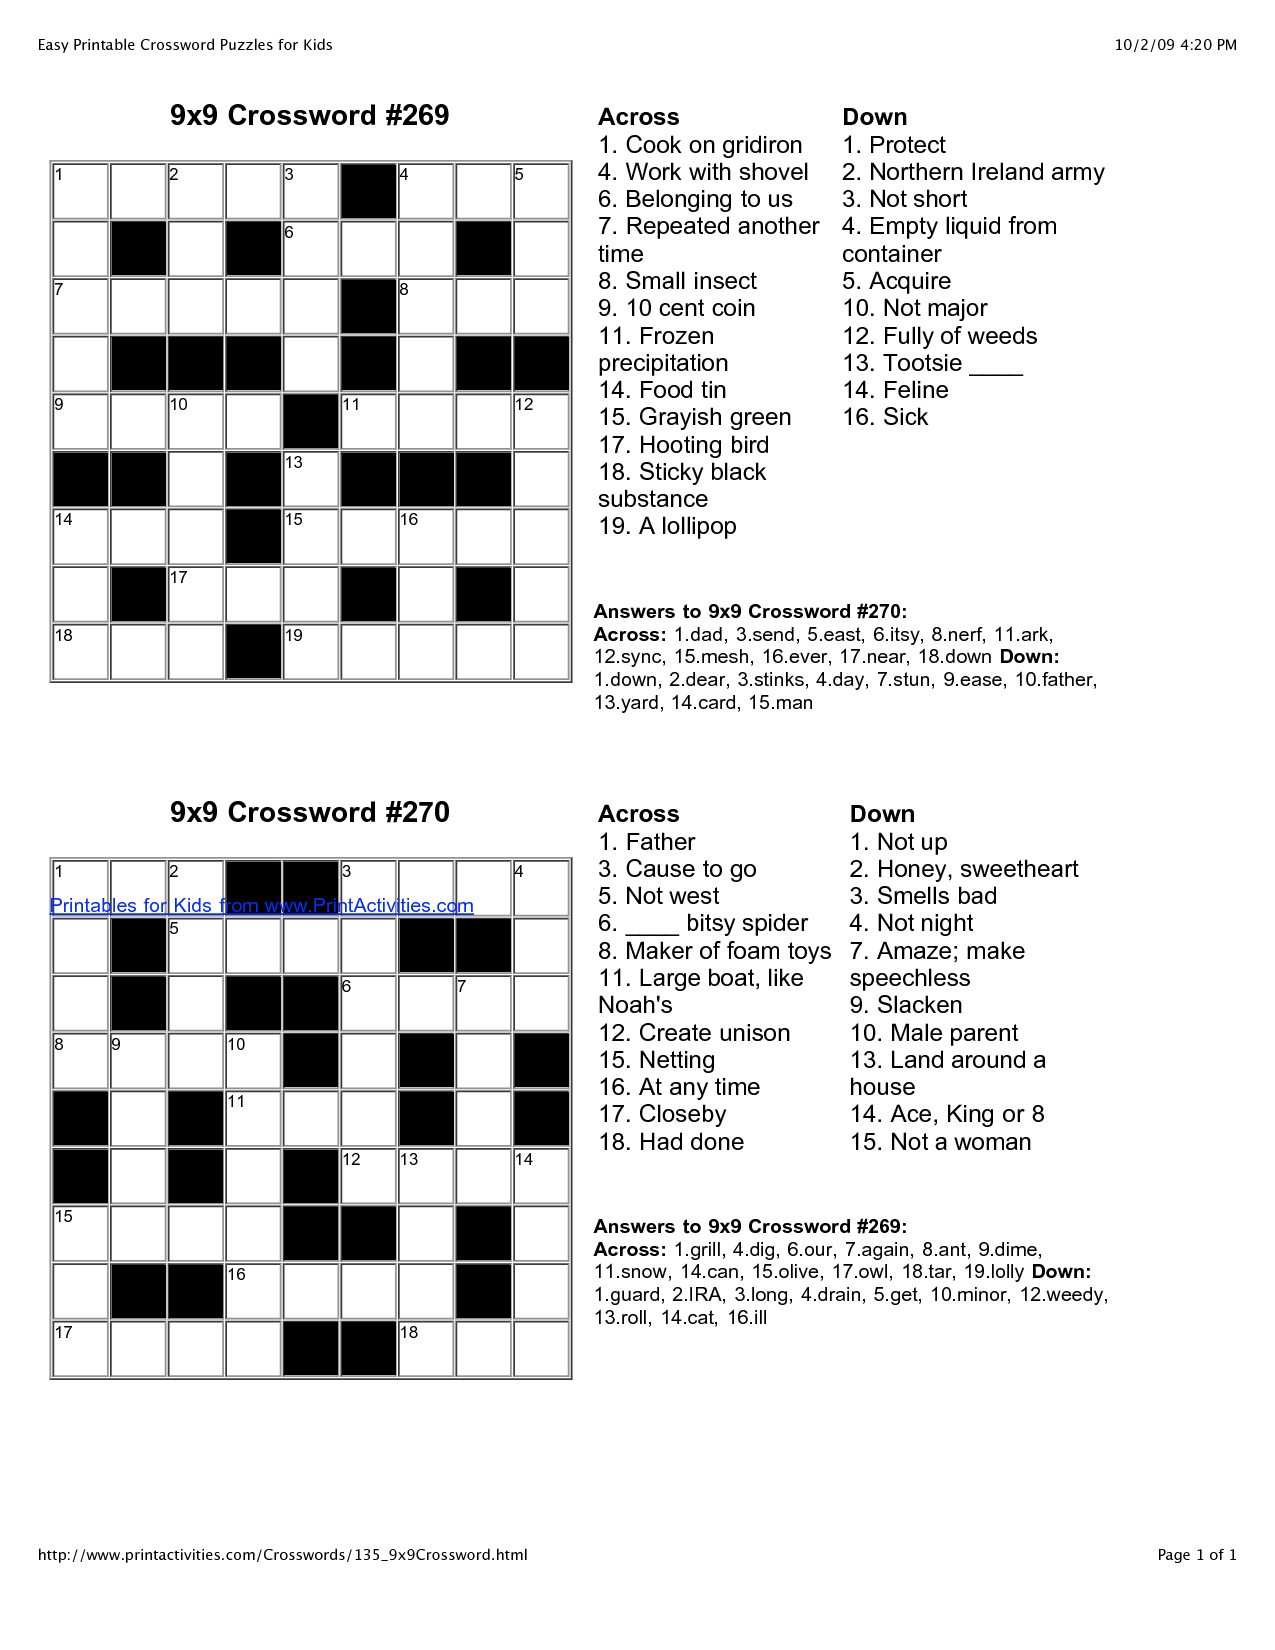 Easy Printable Crossword Puzzles For Kid - Printable Aarp Crossword Puzzles